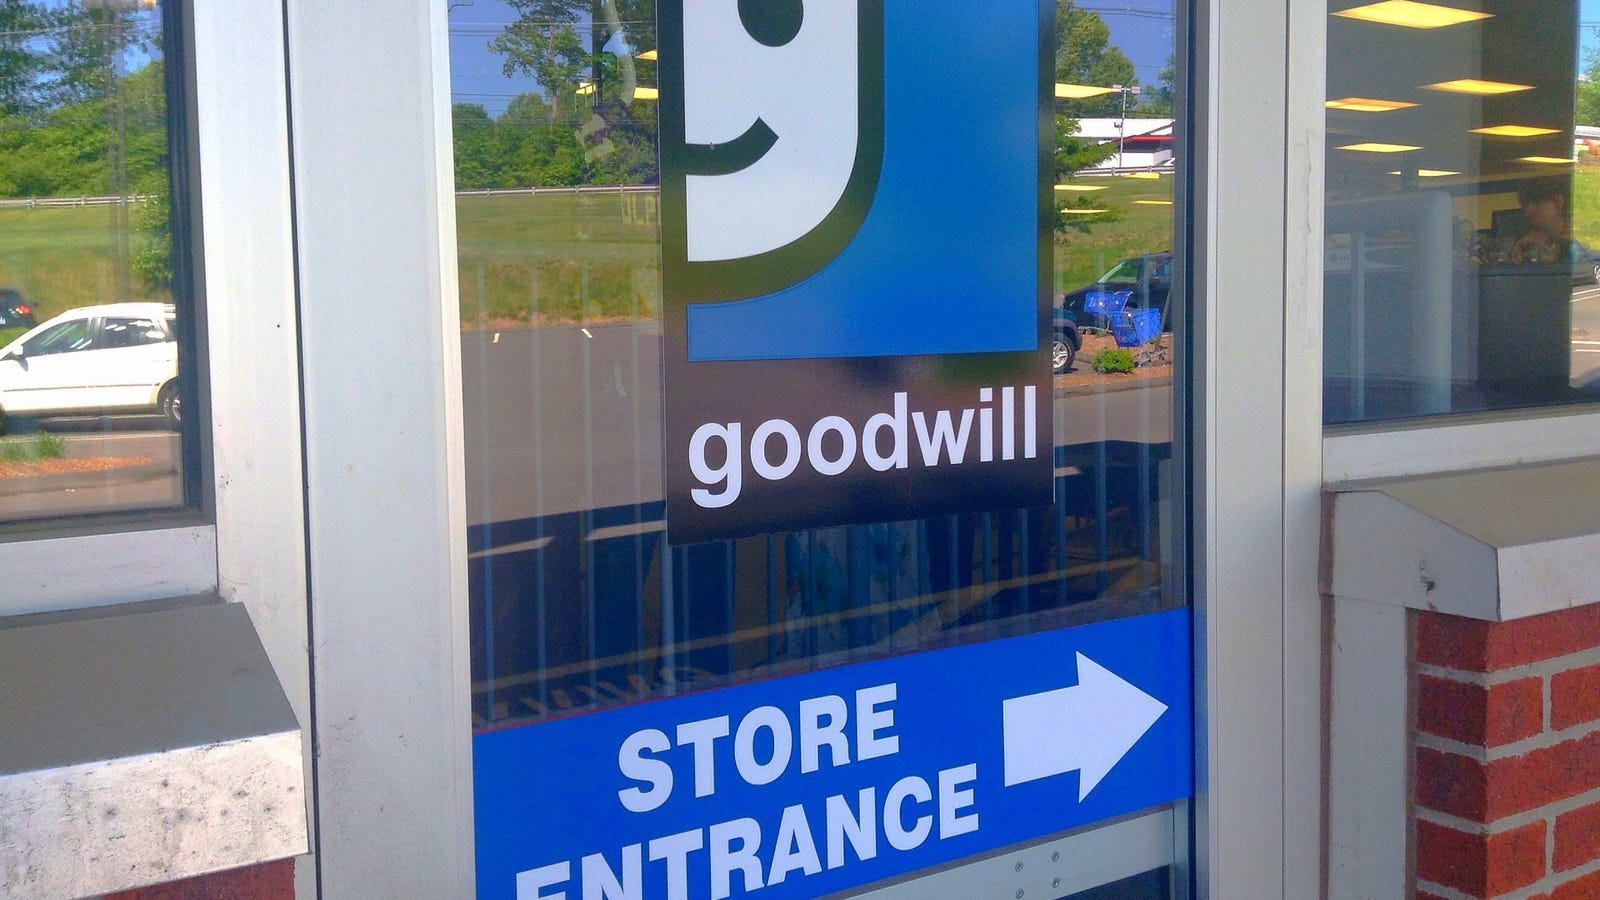 Goodwill Furniture Donation Use Dolly To Send Your Old Stuff To A Donation Center